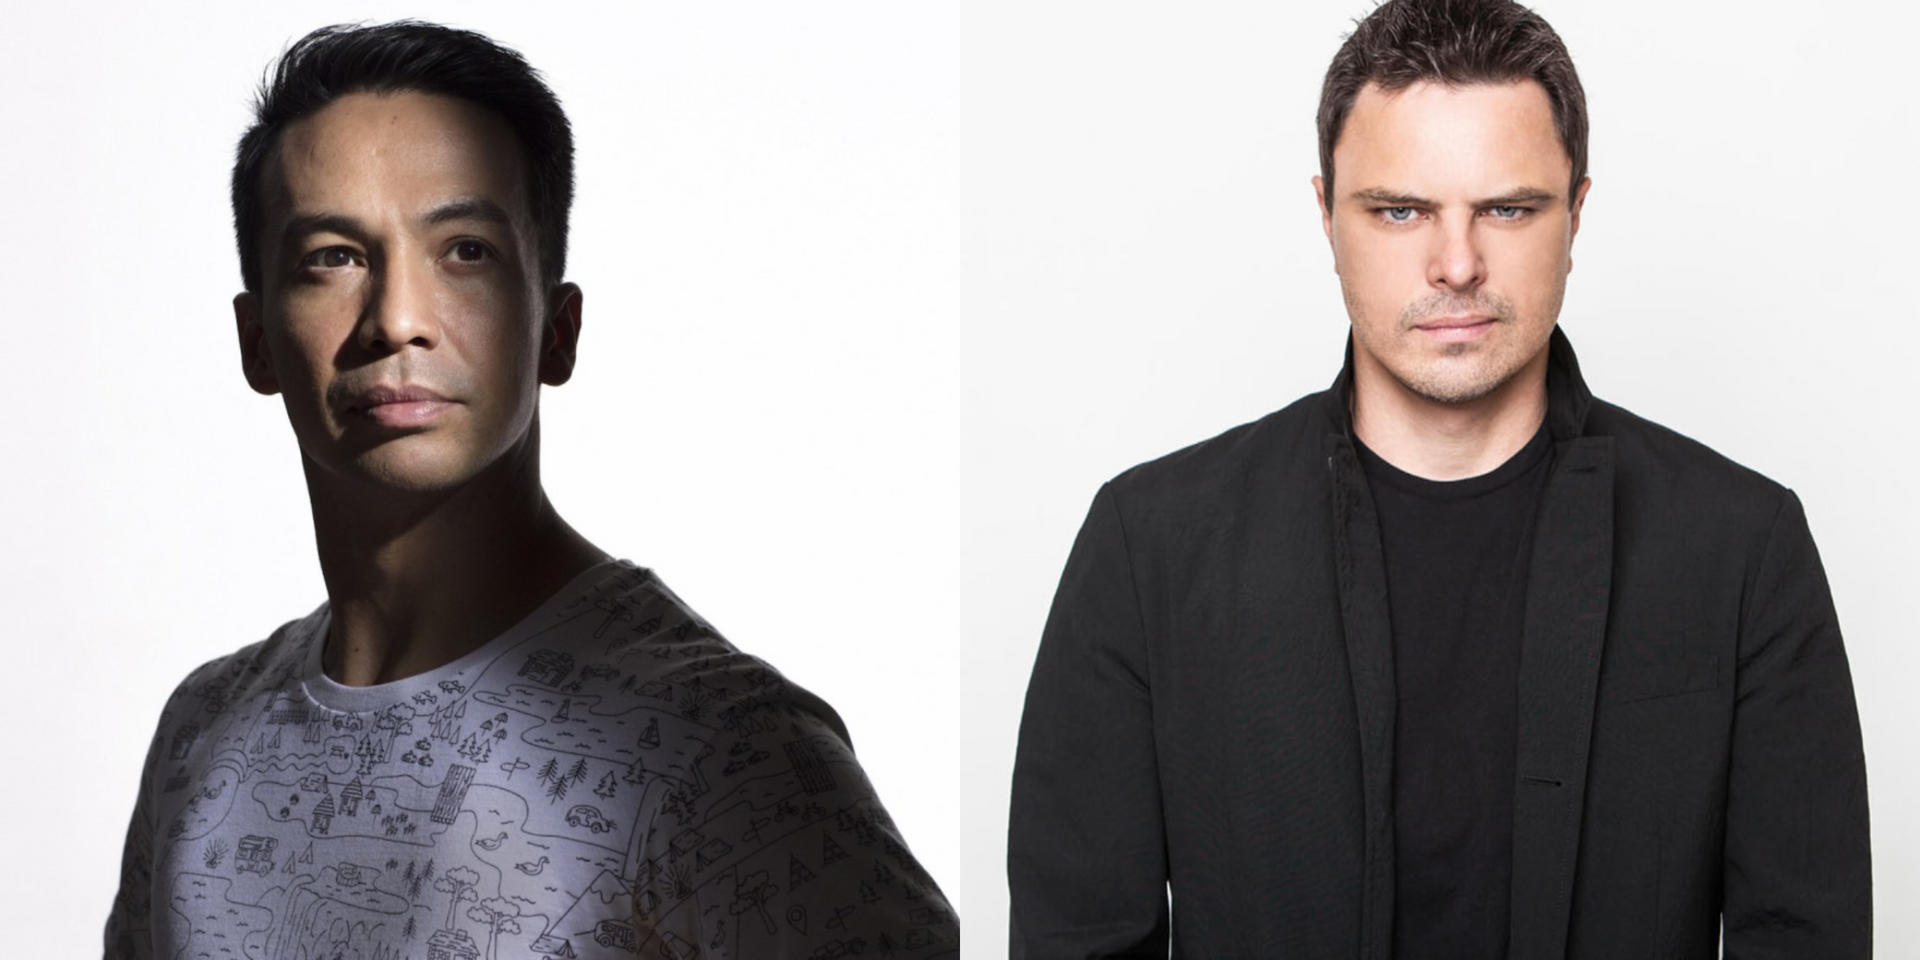 Wired Music Week announces Phase 1 line-up – Laidback Luke, Markus Schulz, Arkham Knights and more to attend